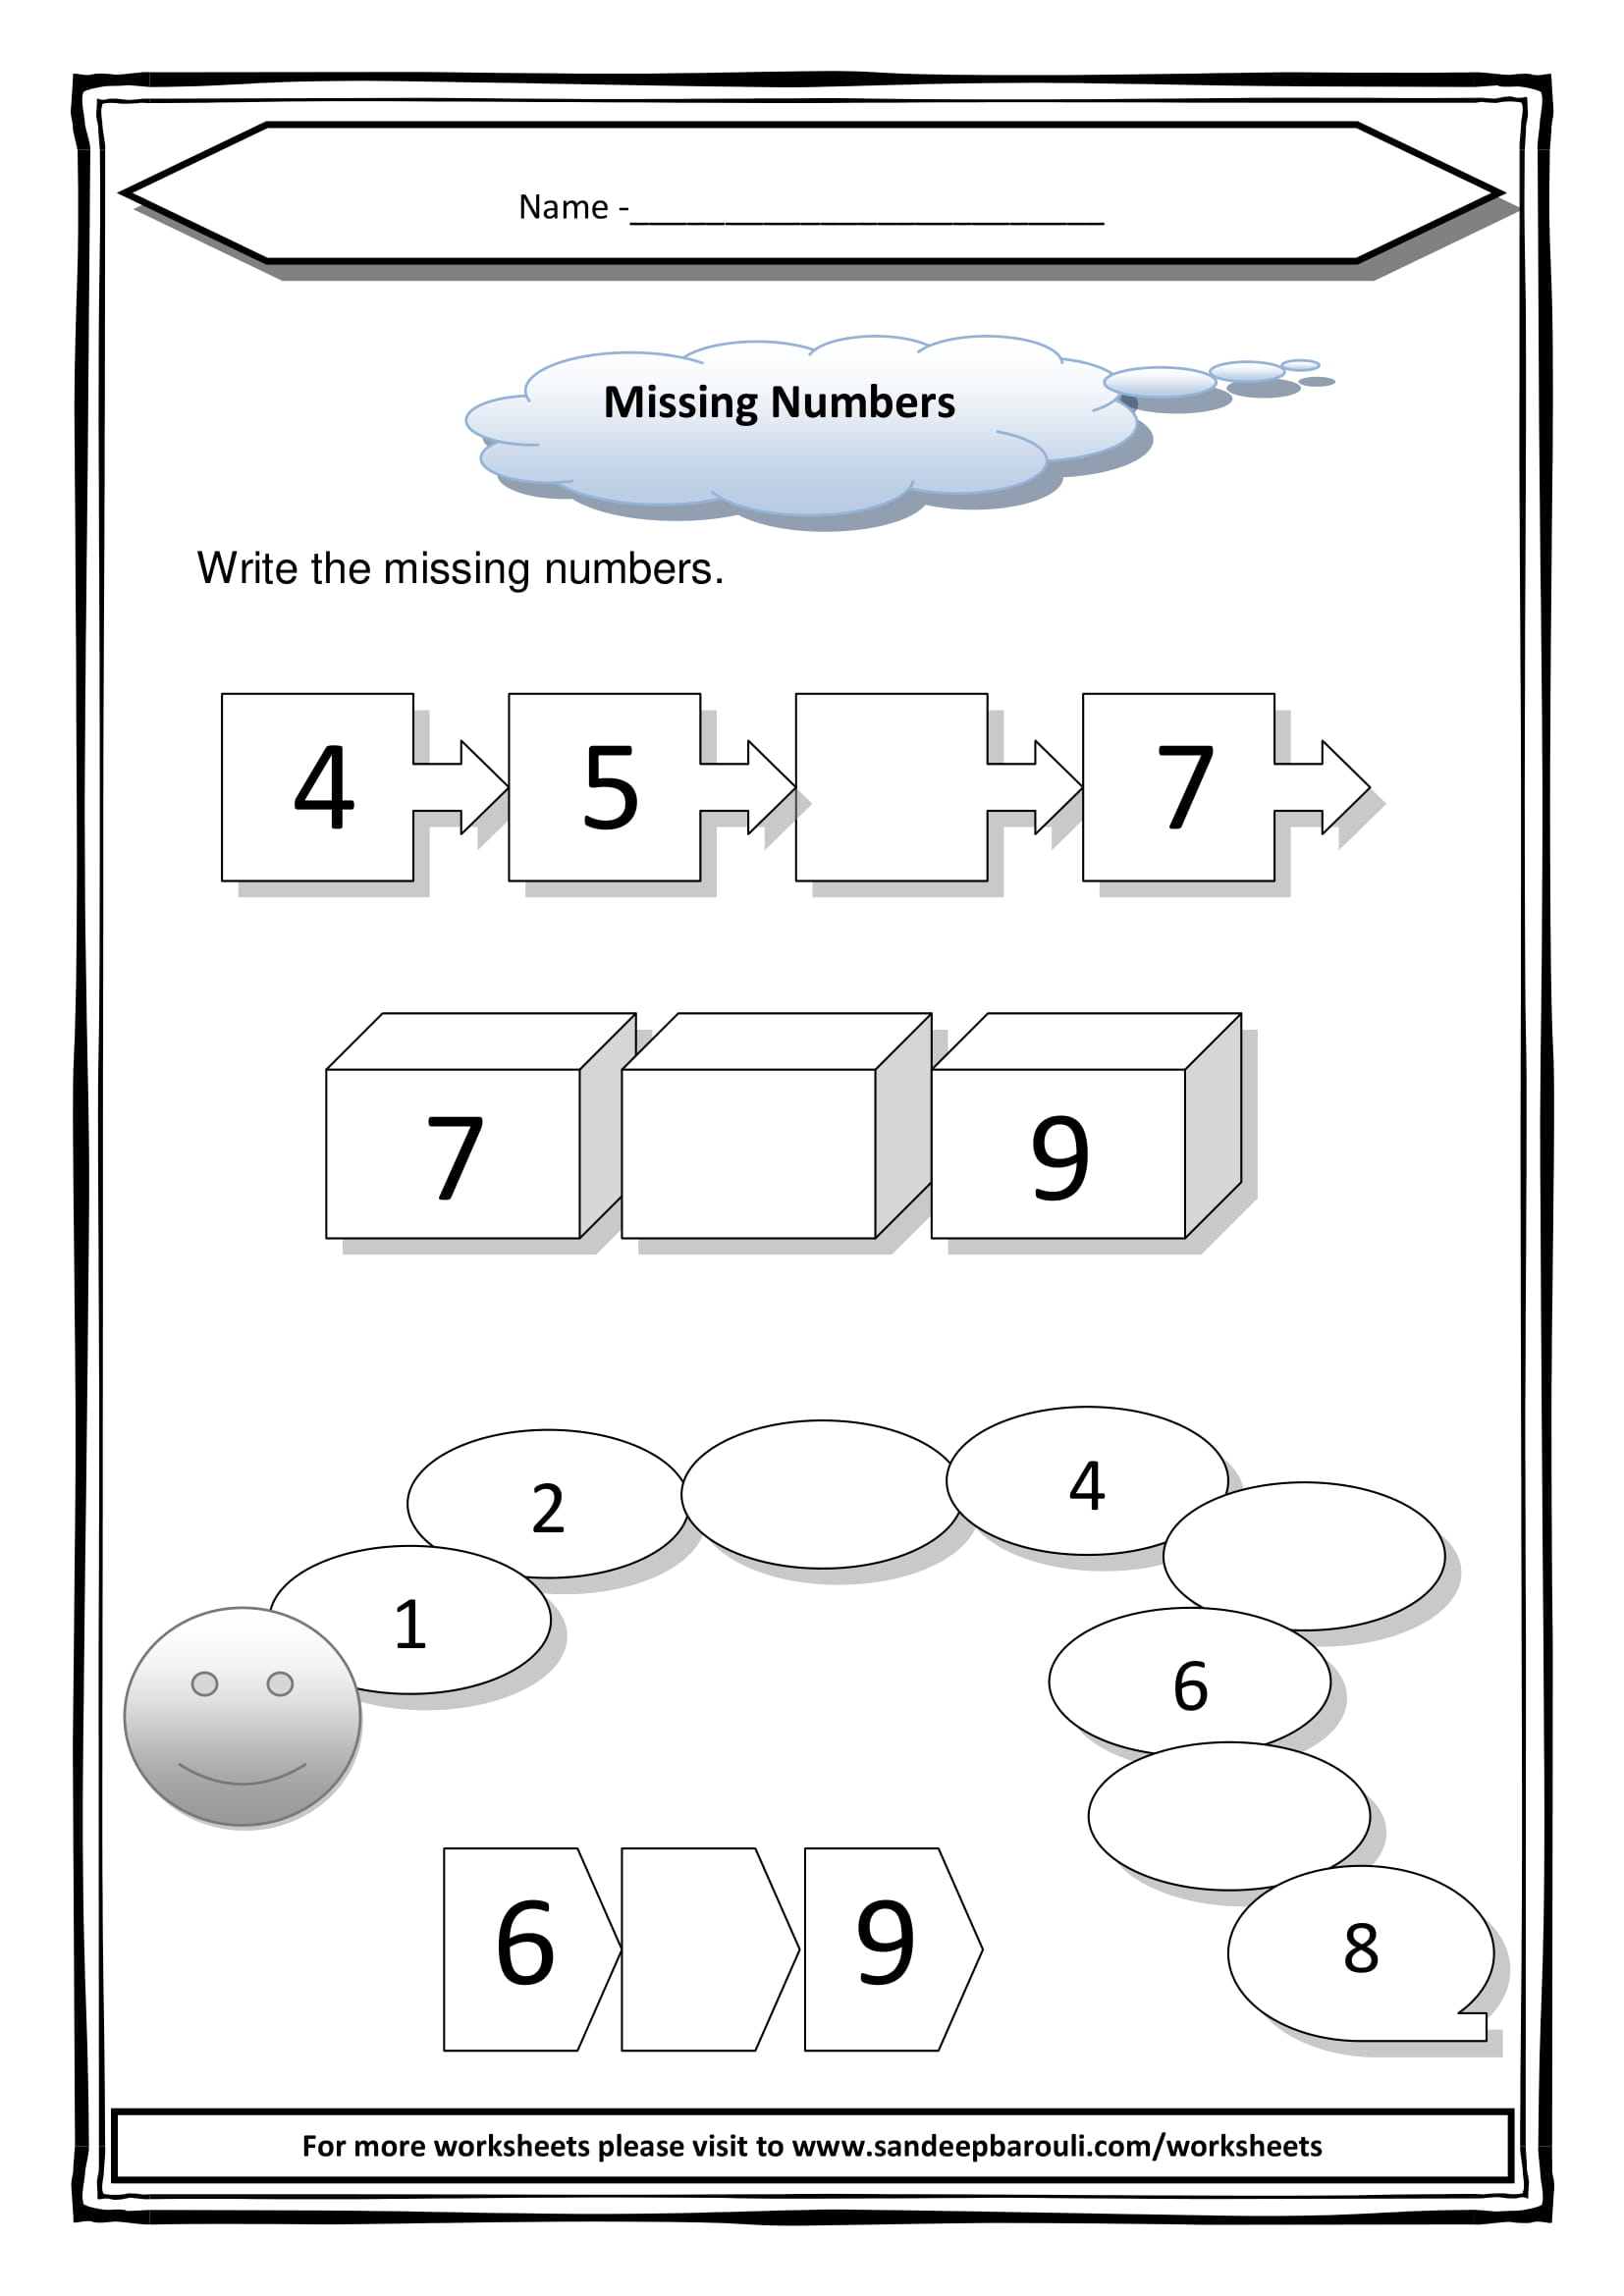 Missing Numbers Worksheet For Class 1